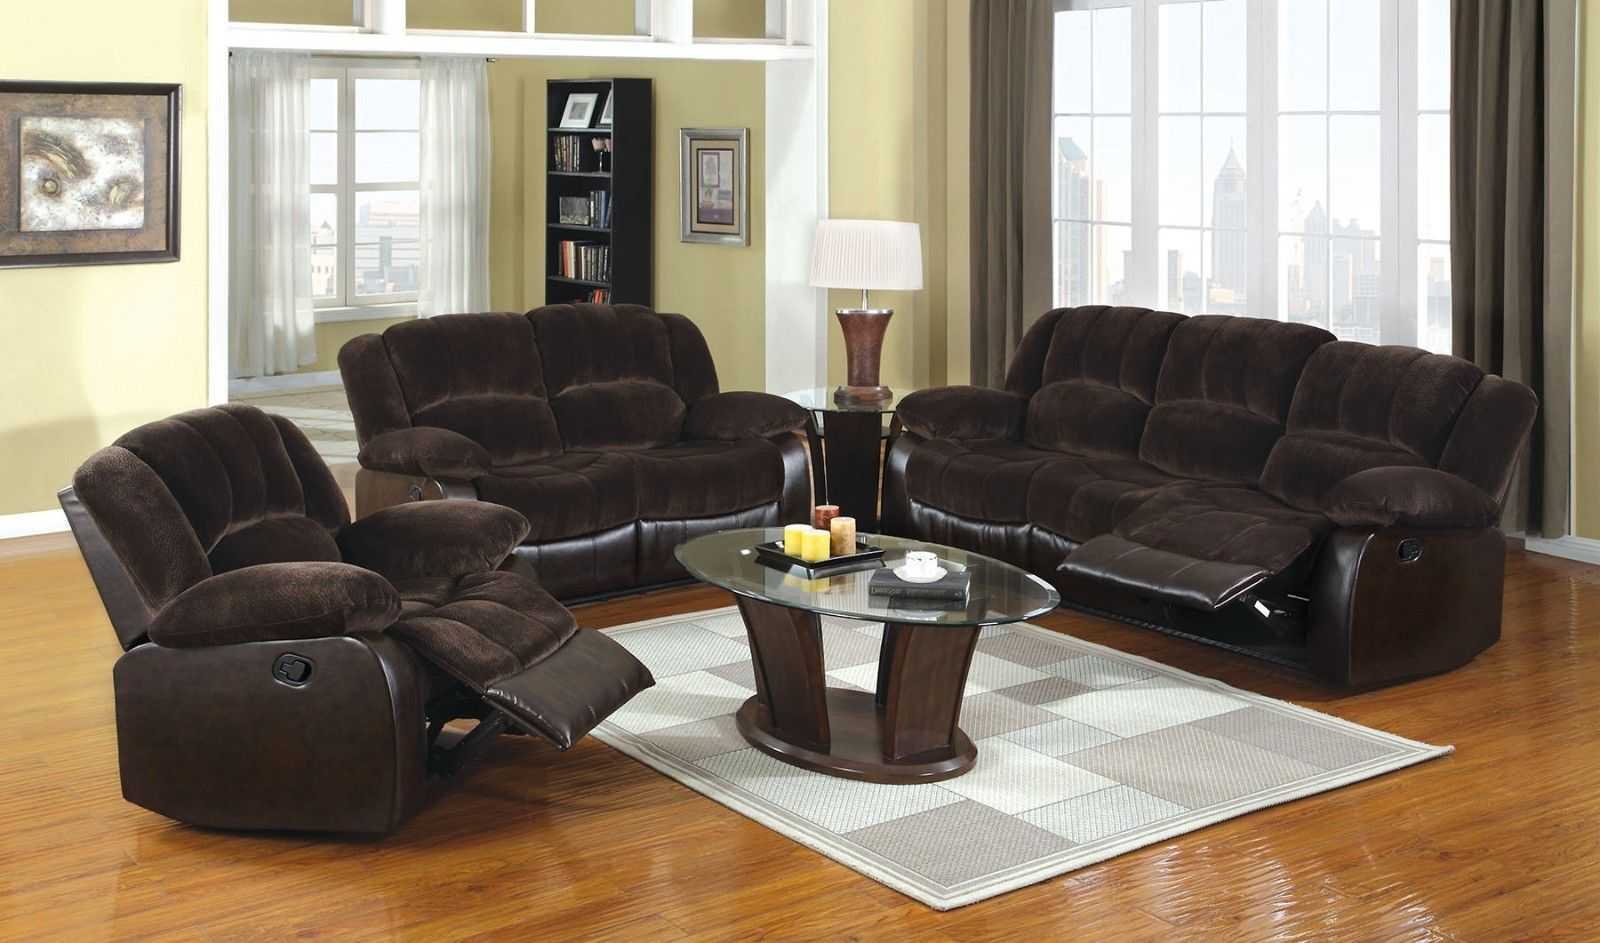 1549 99 Modern Reclining 2pc Sofa Set Living Room Brown Built In